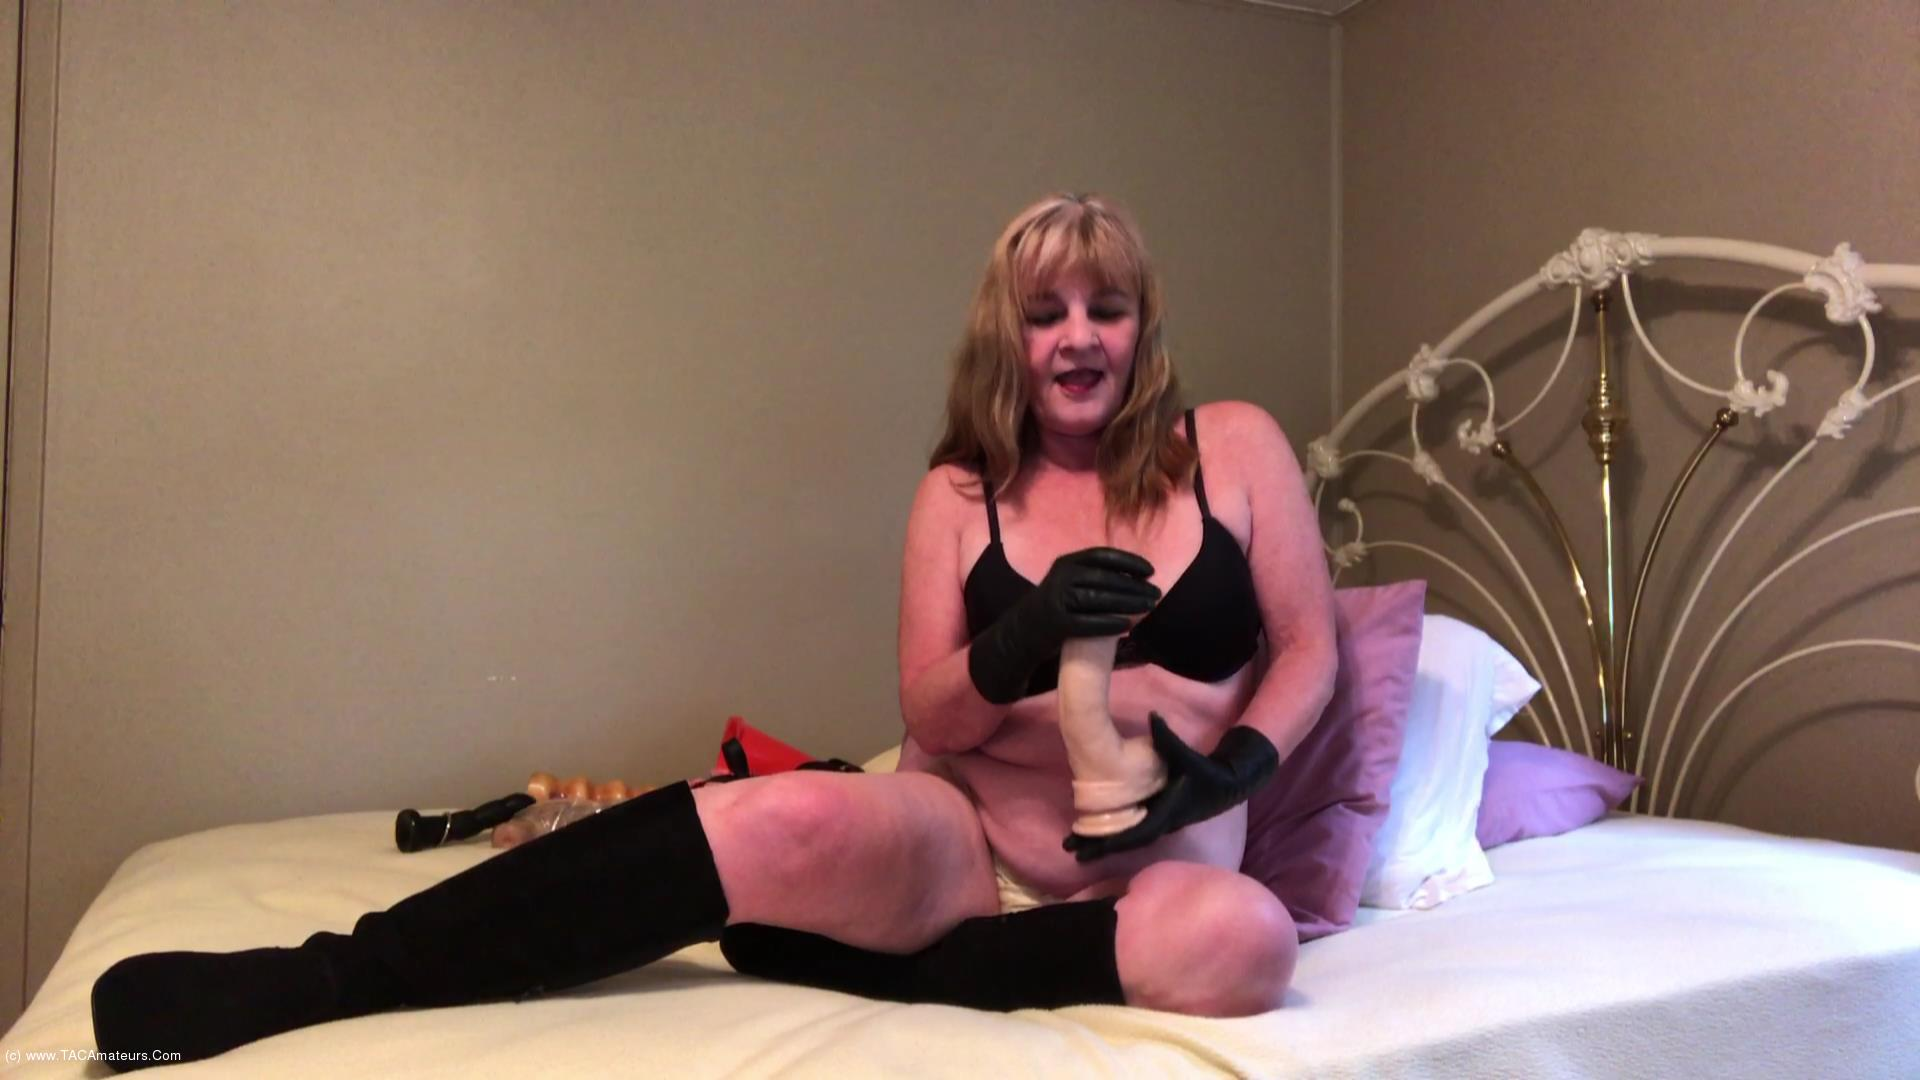 CougarBabeJolee - Masturbation Instructions Using My Hot Leather Gloves scene 0